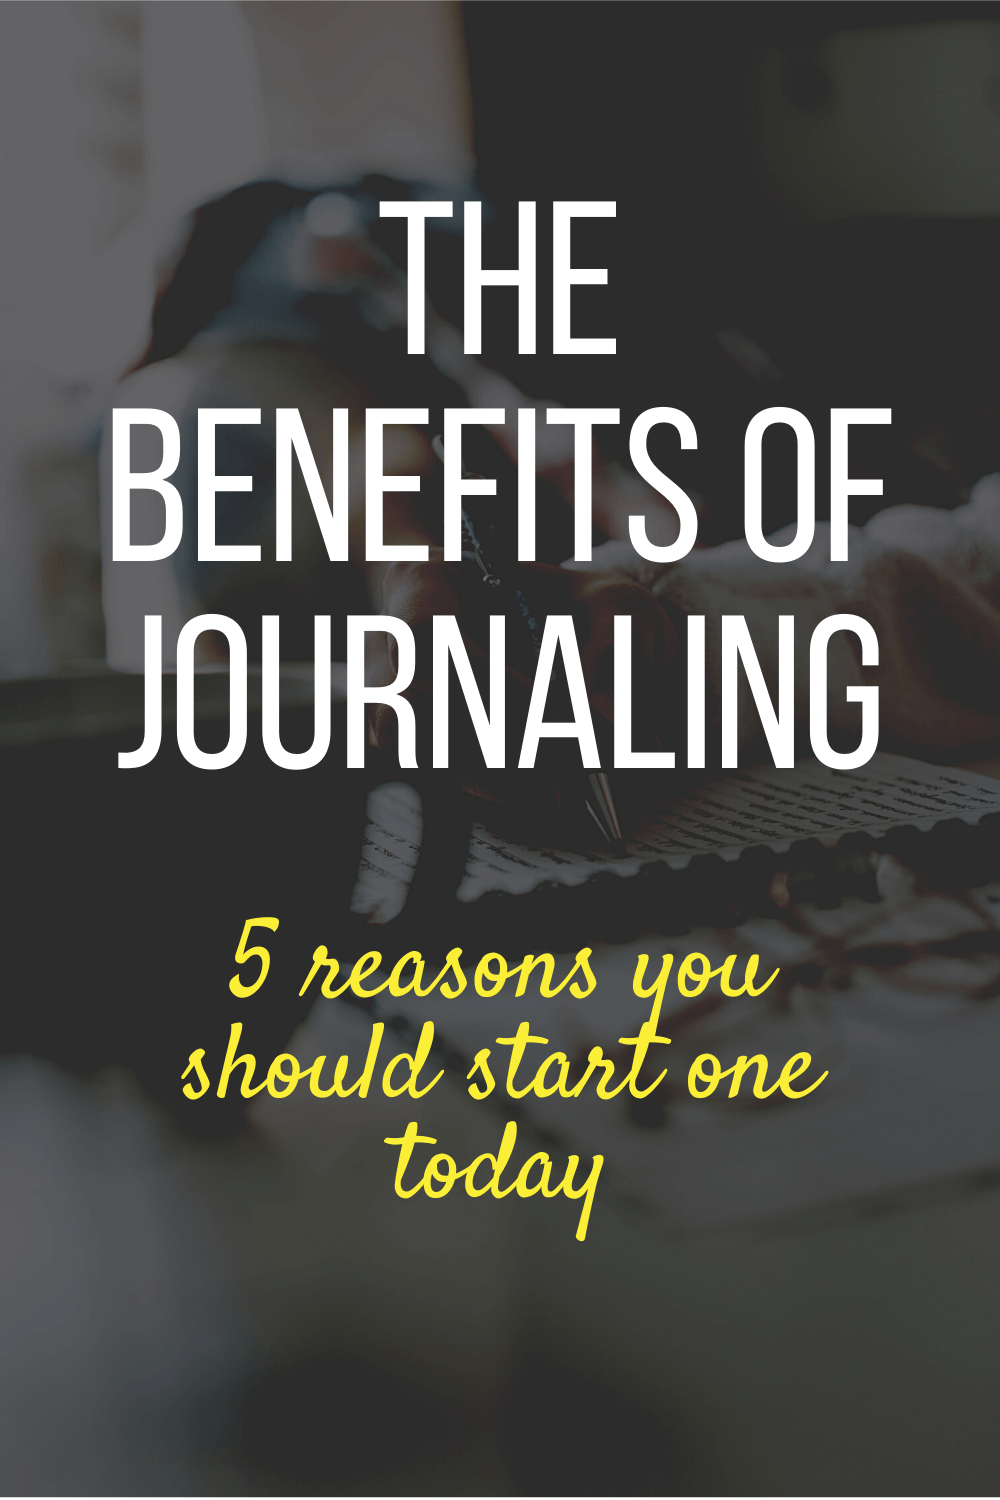 To start a journal all you need is a pen and a notebook, but the benefits of journaling are so much more powerful than the tools we use to keep one!